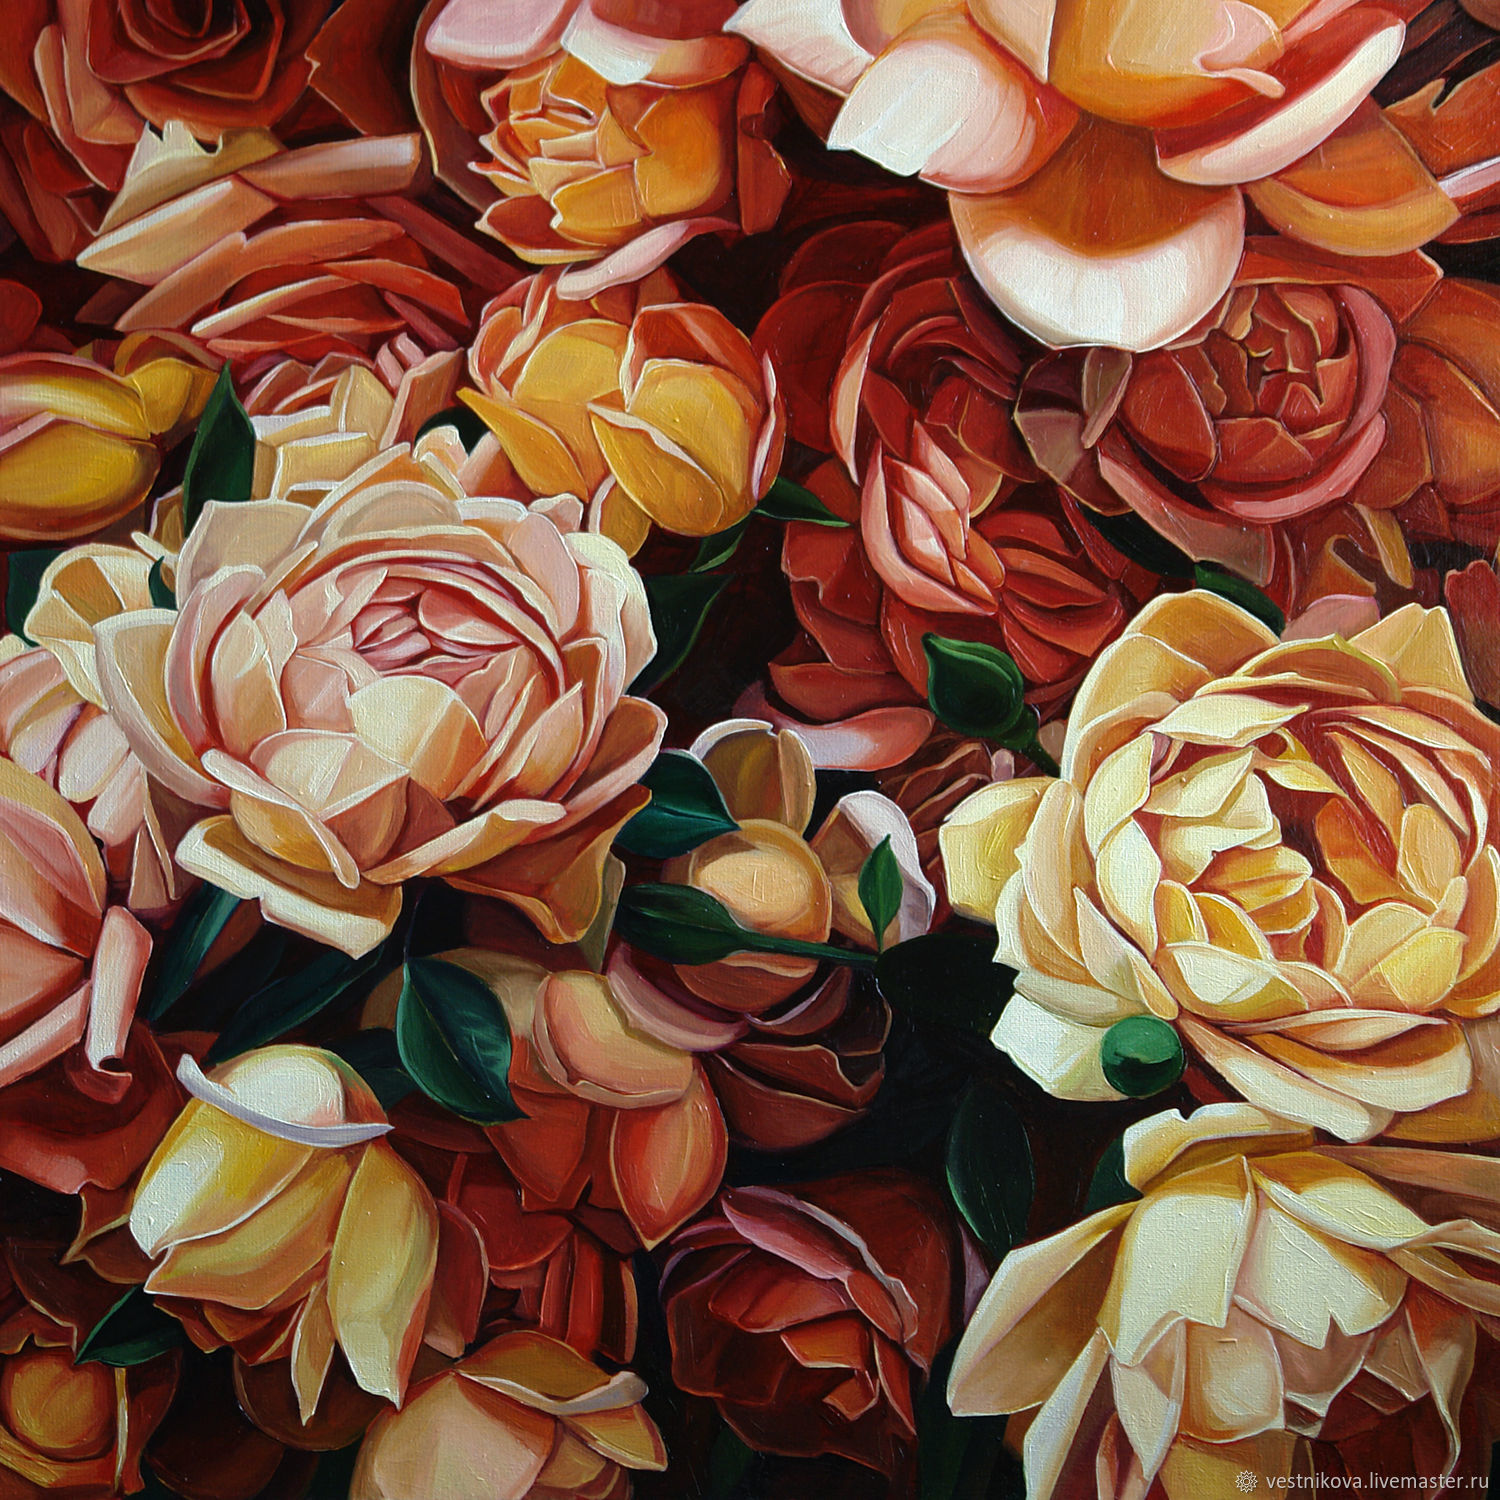 Painting 'Tea roses' oil on canvas 60h60cm, Pictures, Moscow,  Фото №1